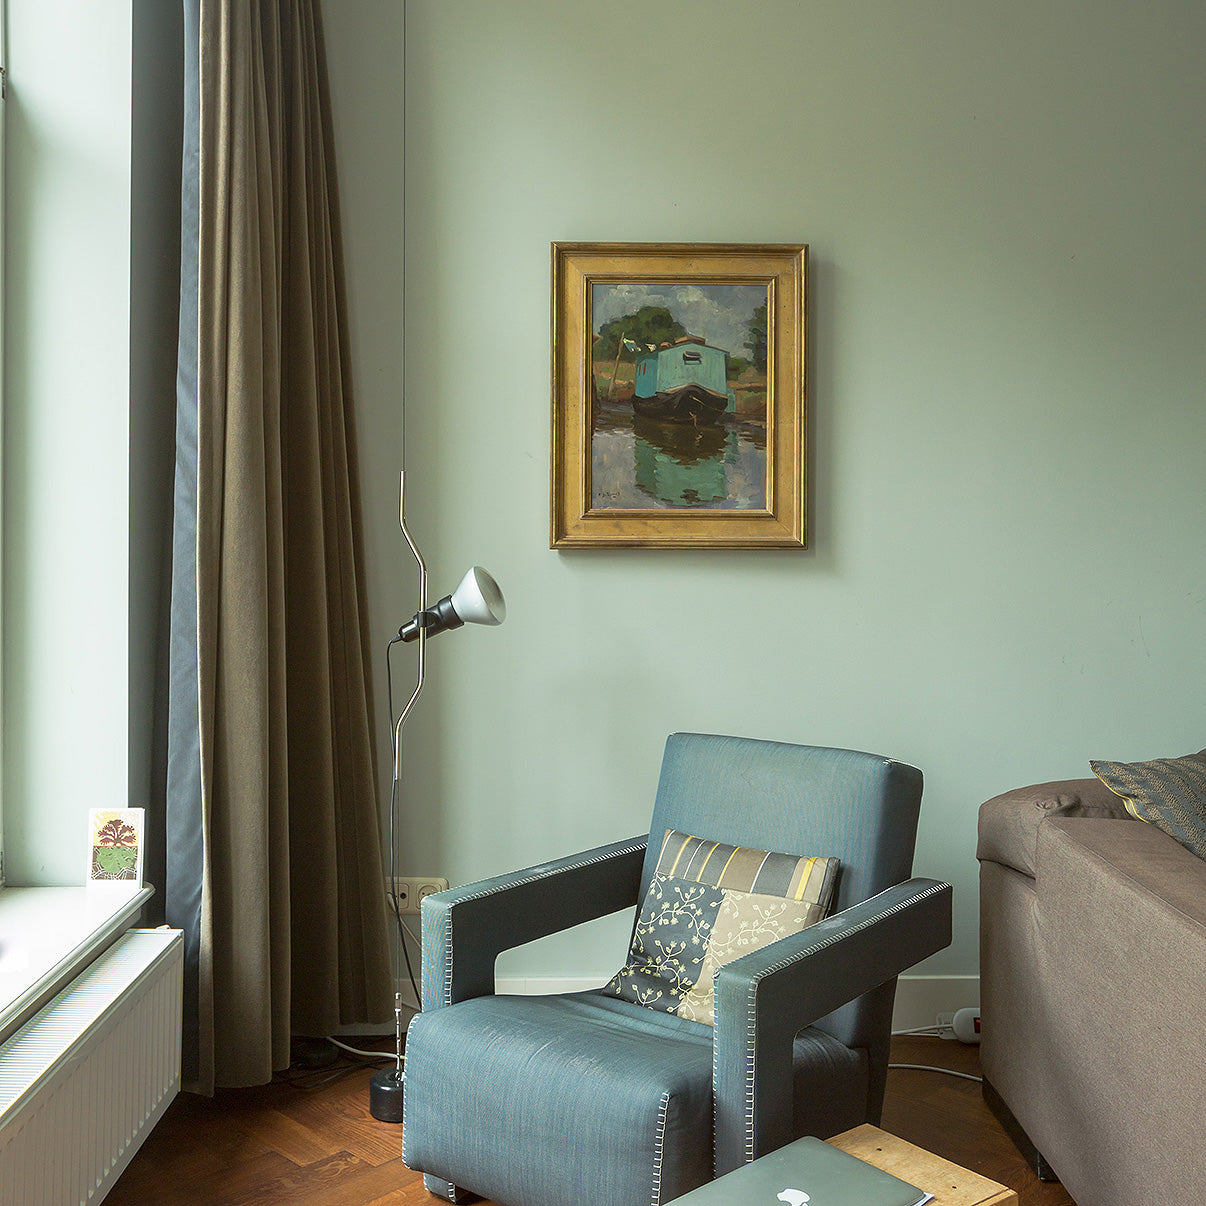 Mint green colored living space/Photography: Jeroen Van Pelt/Living rooms in colors like light green yielded higher offer prices in Zillow's study.